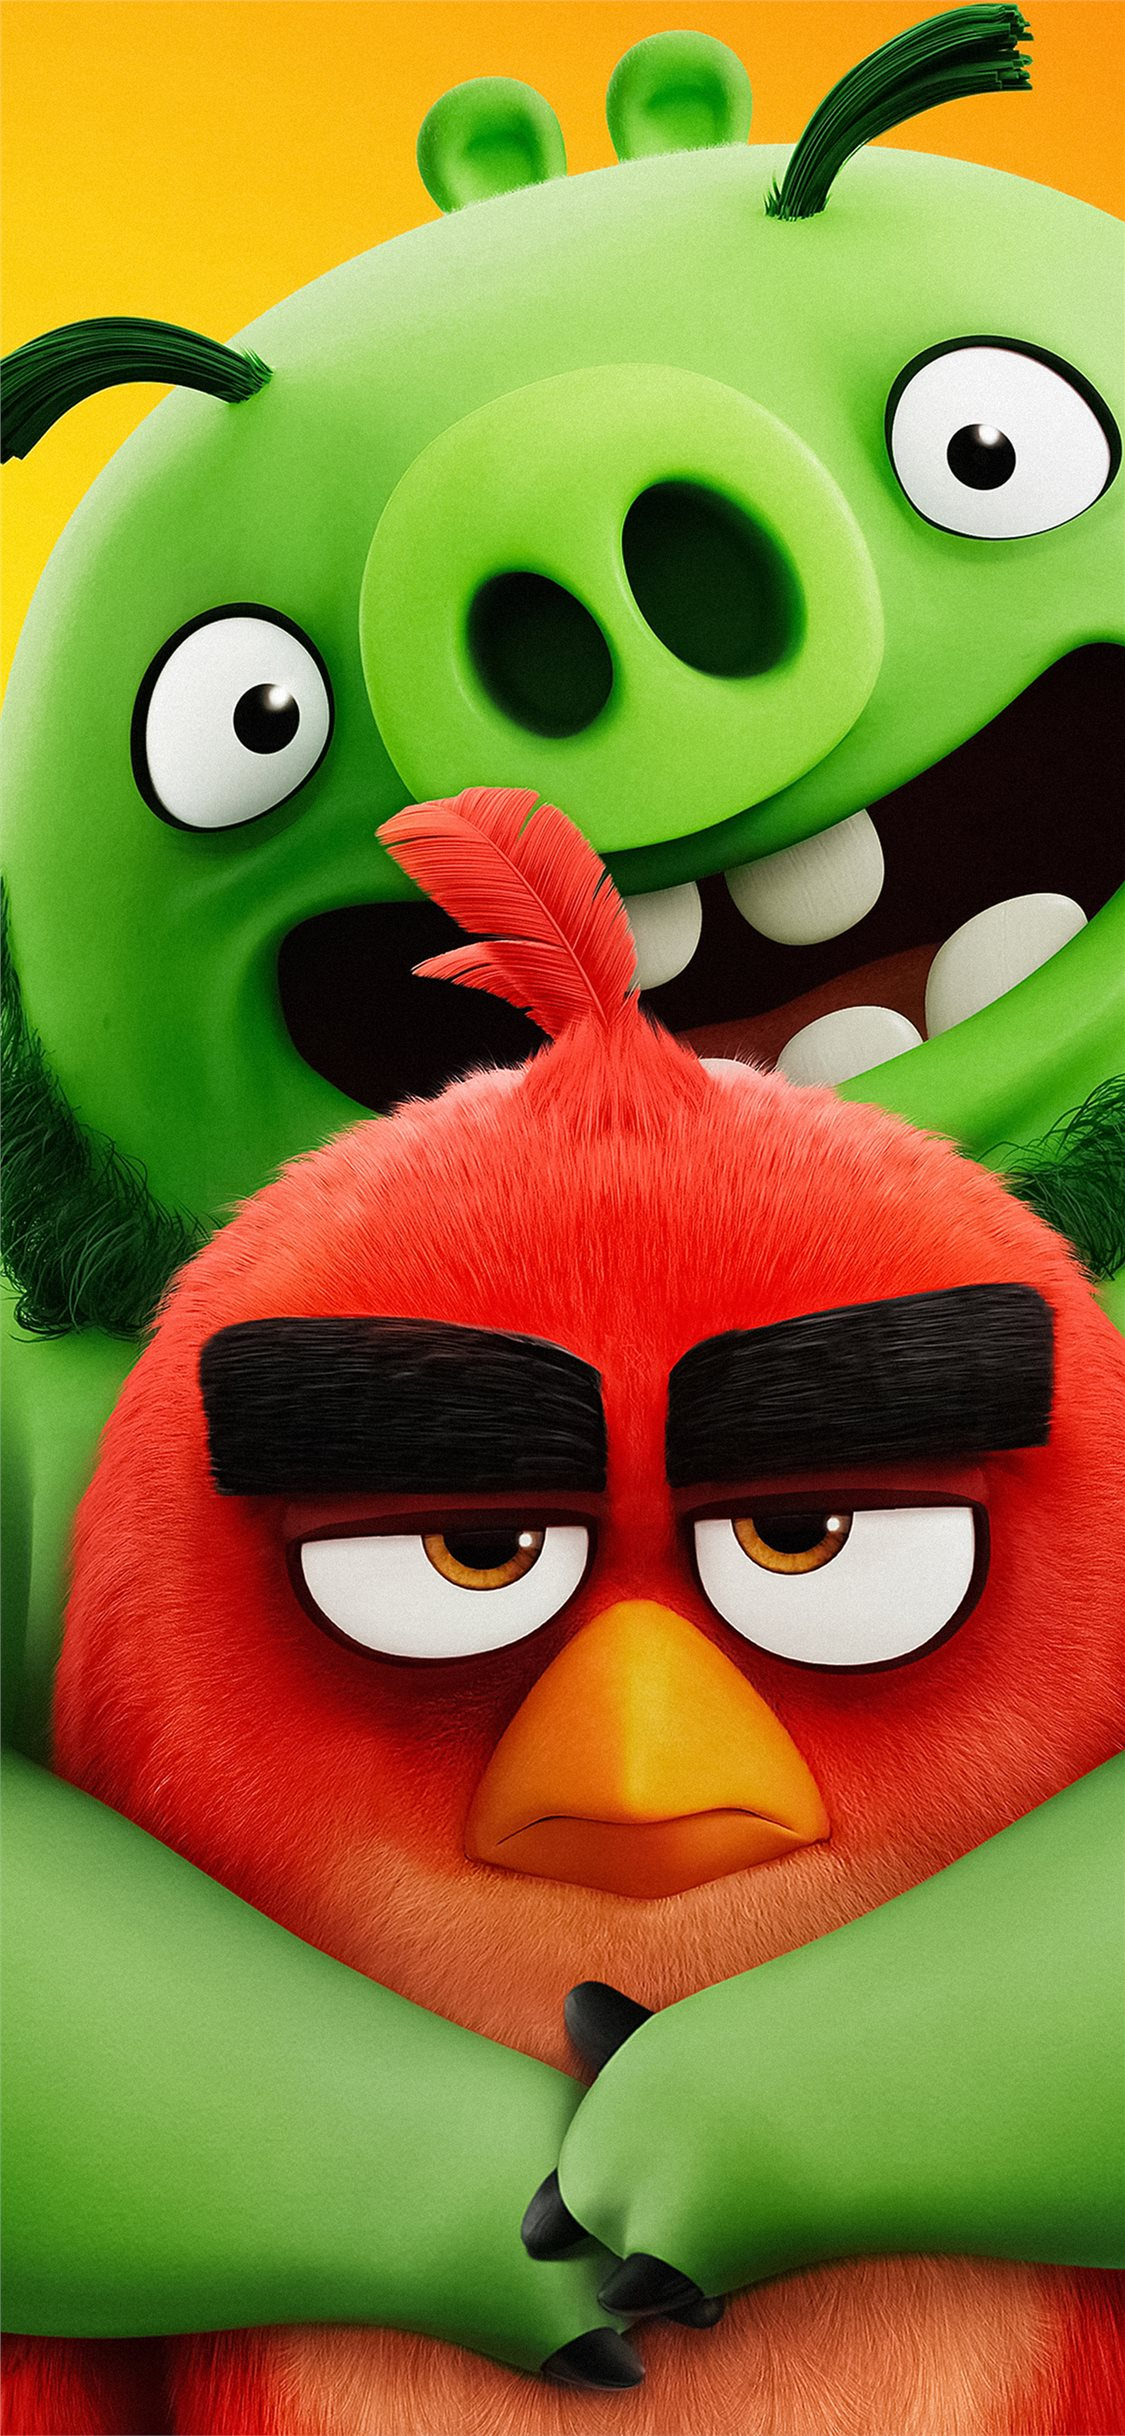 Iphone Wallpaper Angry Birds , HD Wallpaper & Backgrounds